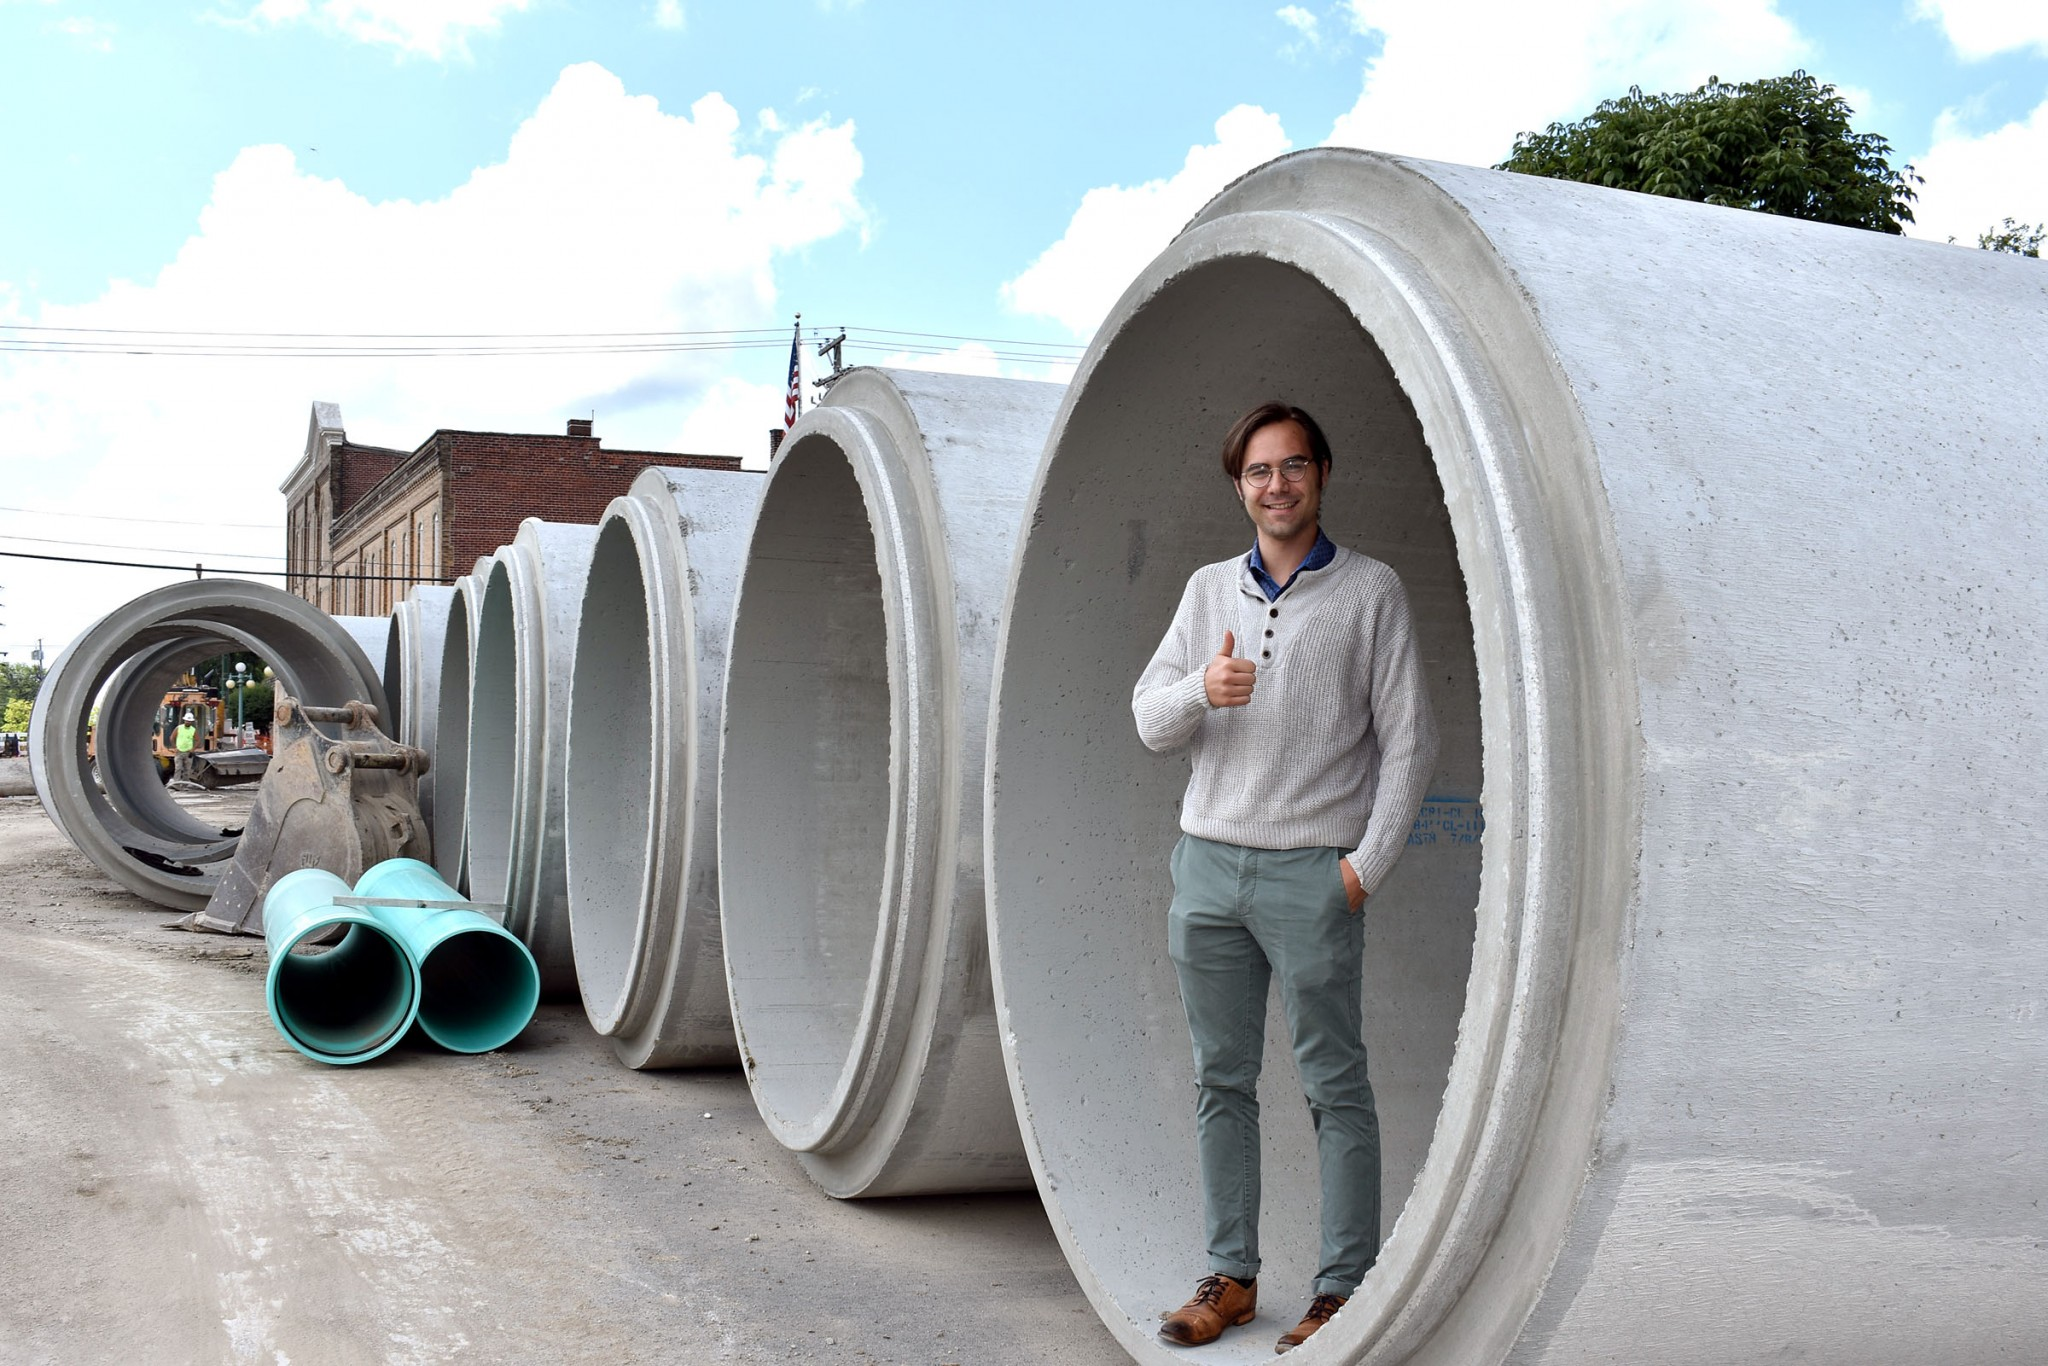 Mayor Babcock stands in an 84-inch concrete sewer pipe that will convey storm water to the Portage River. (Submitted photo)